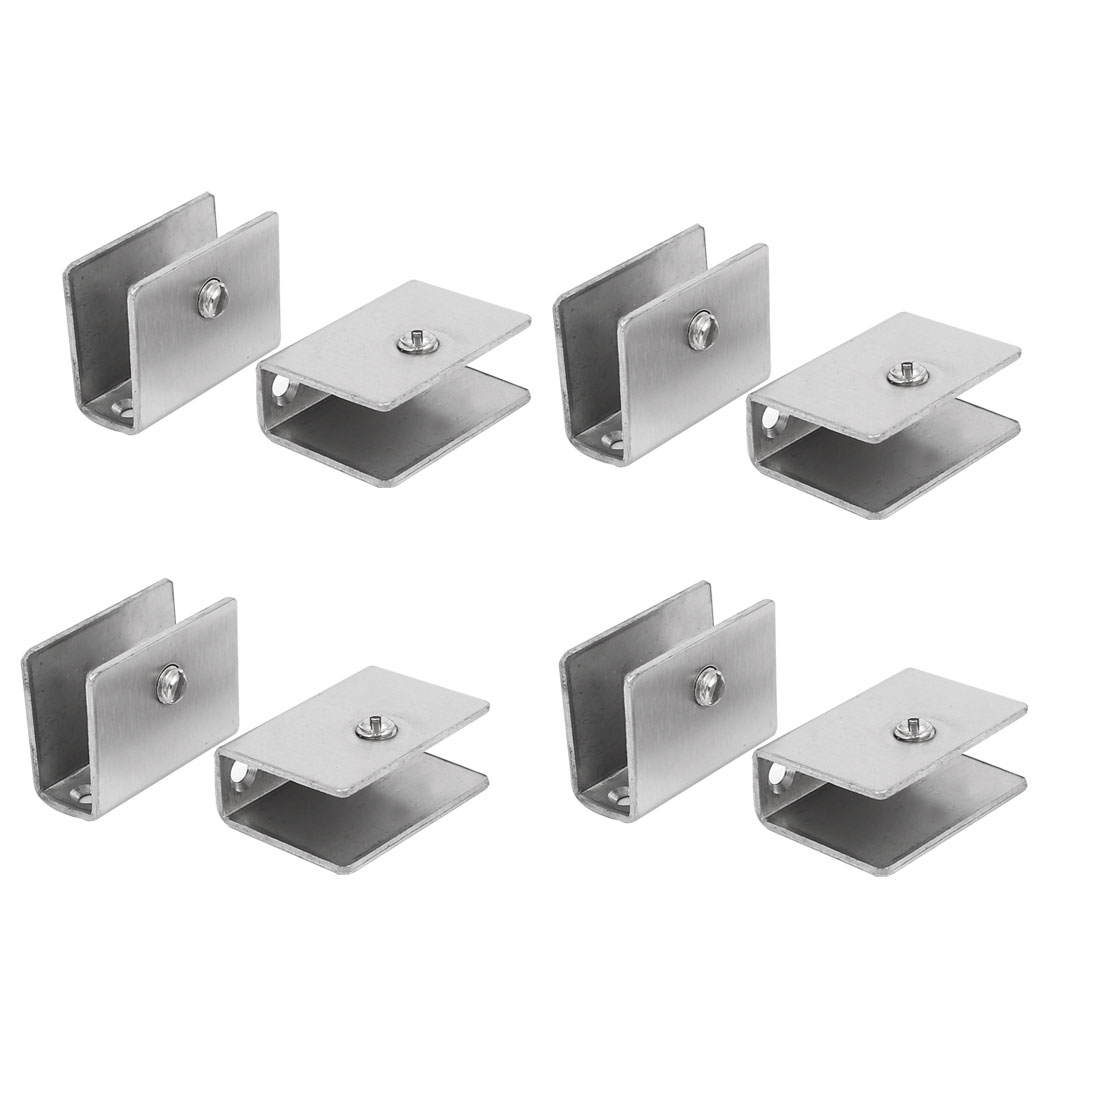 Épaisseur 10mm-12mm rectangle Acier Inoxydable Collier Tablette en verre porte clip 8Pcs